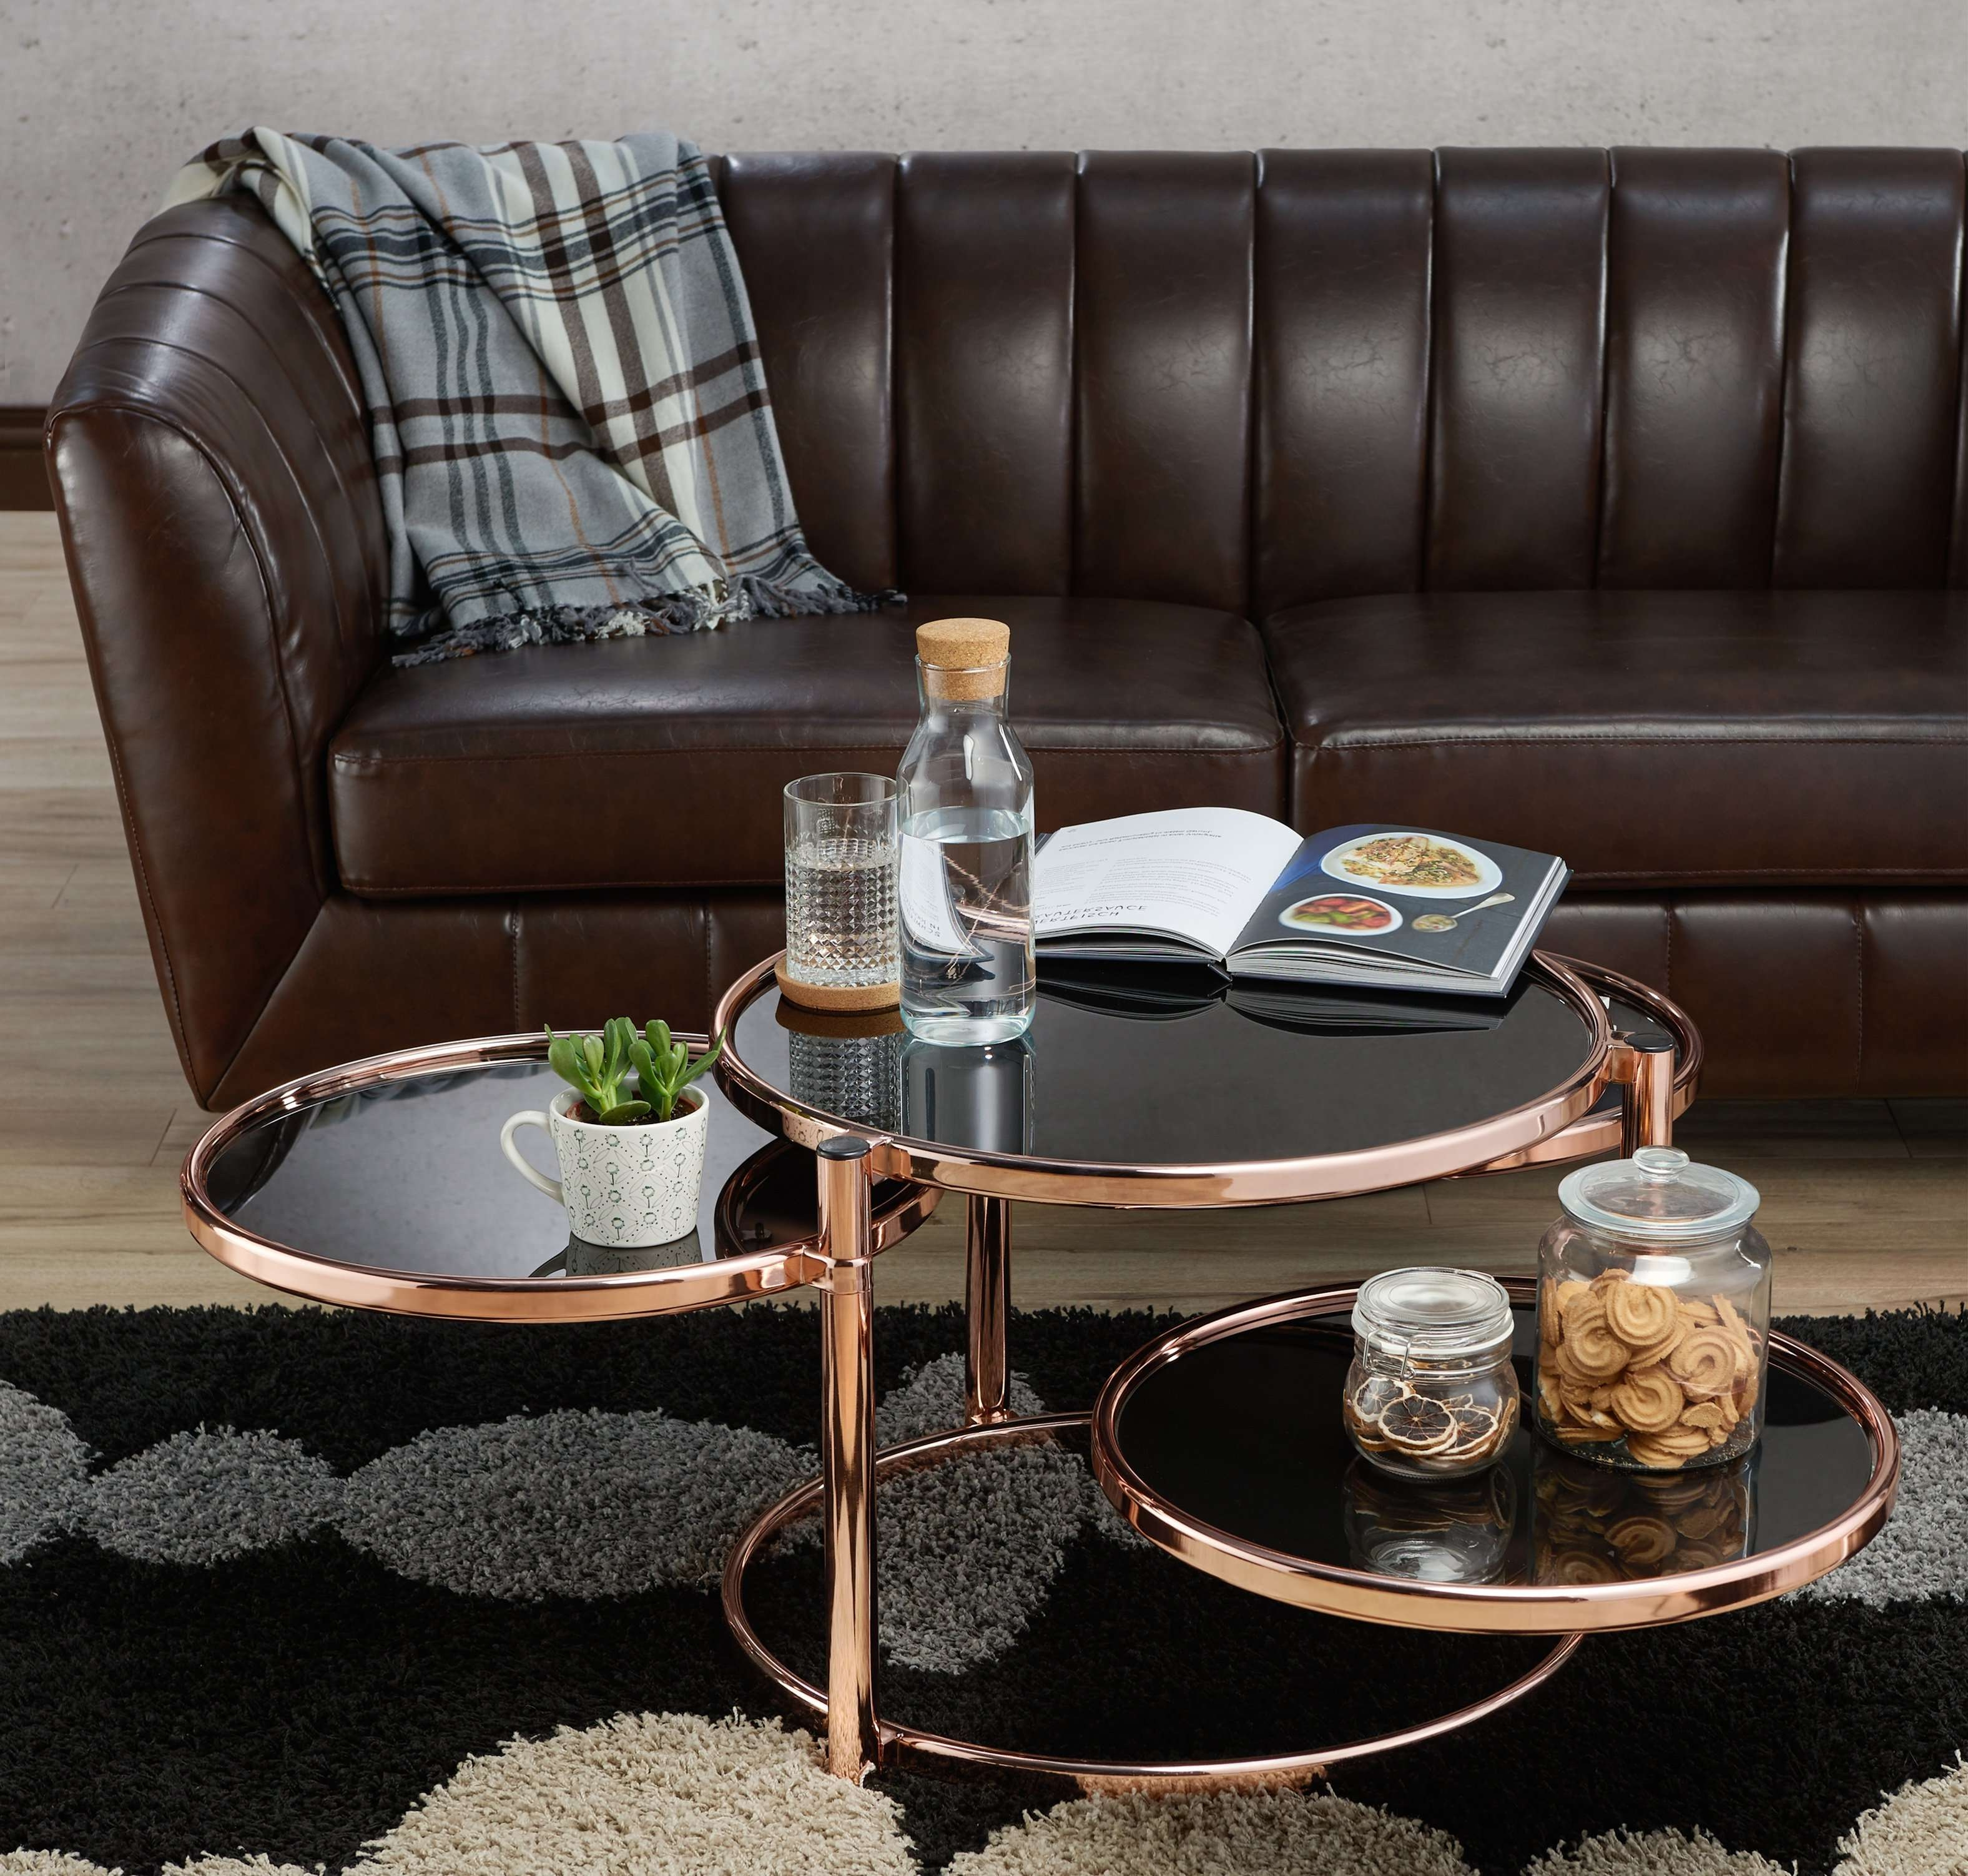 Ebay Within Newest Round Swivel Coffee Tables (View 20 of 20)